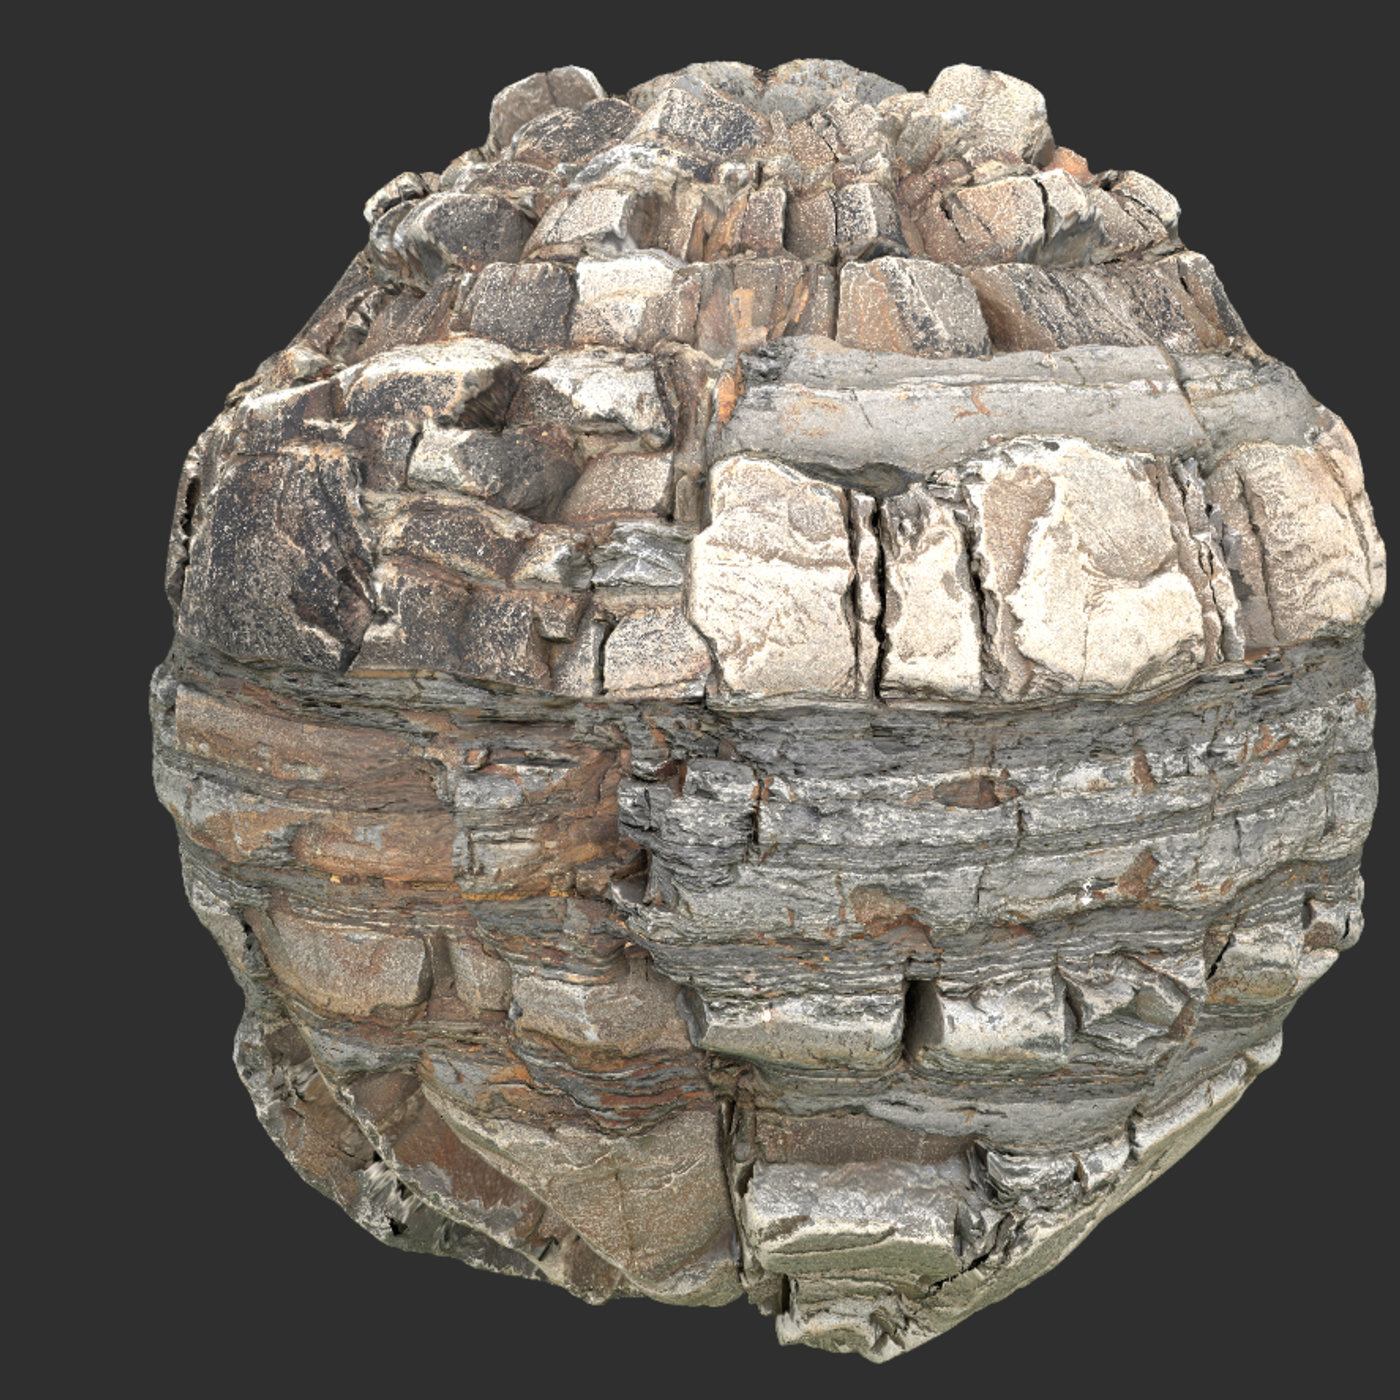 rock cliff seamless pbr texture